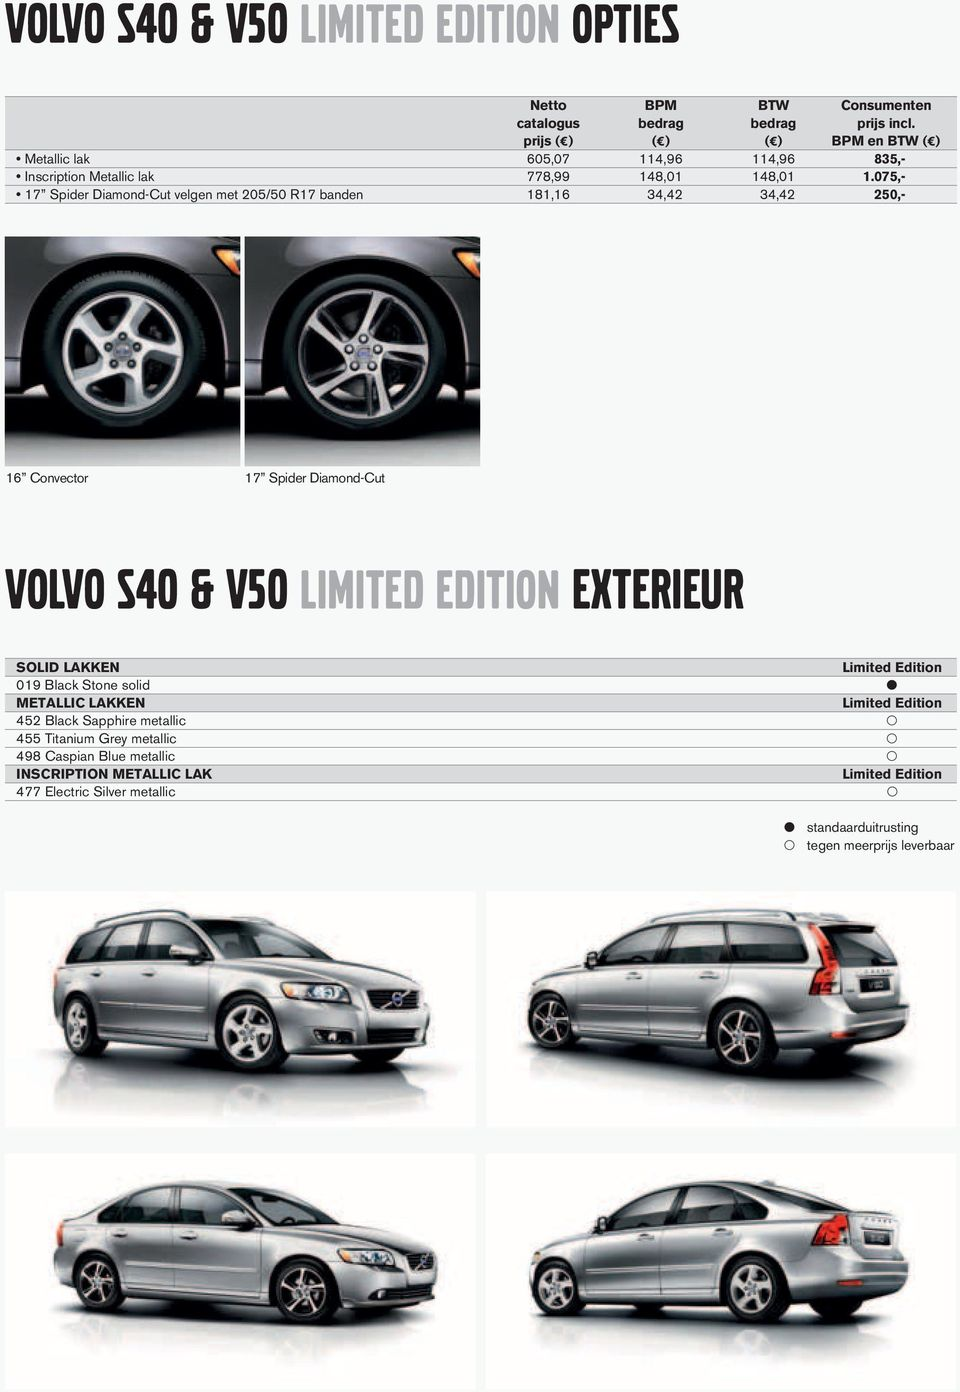 075,- 17 Spider Diamond-Cut velgen met 205/50 R17 banden 181,16 34,42 34,42 250,- 16 Convector 17 Spider Diamond-Cut VOLVO S40 & V50 LIMITED EDITION